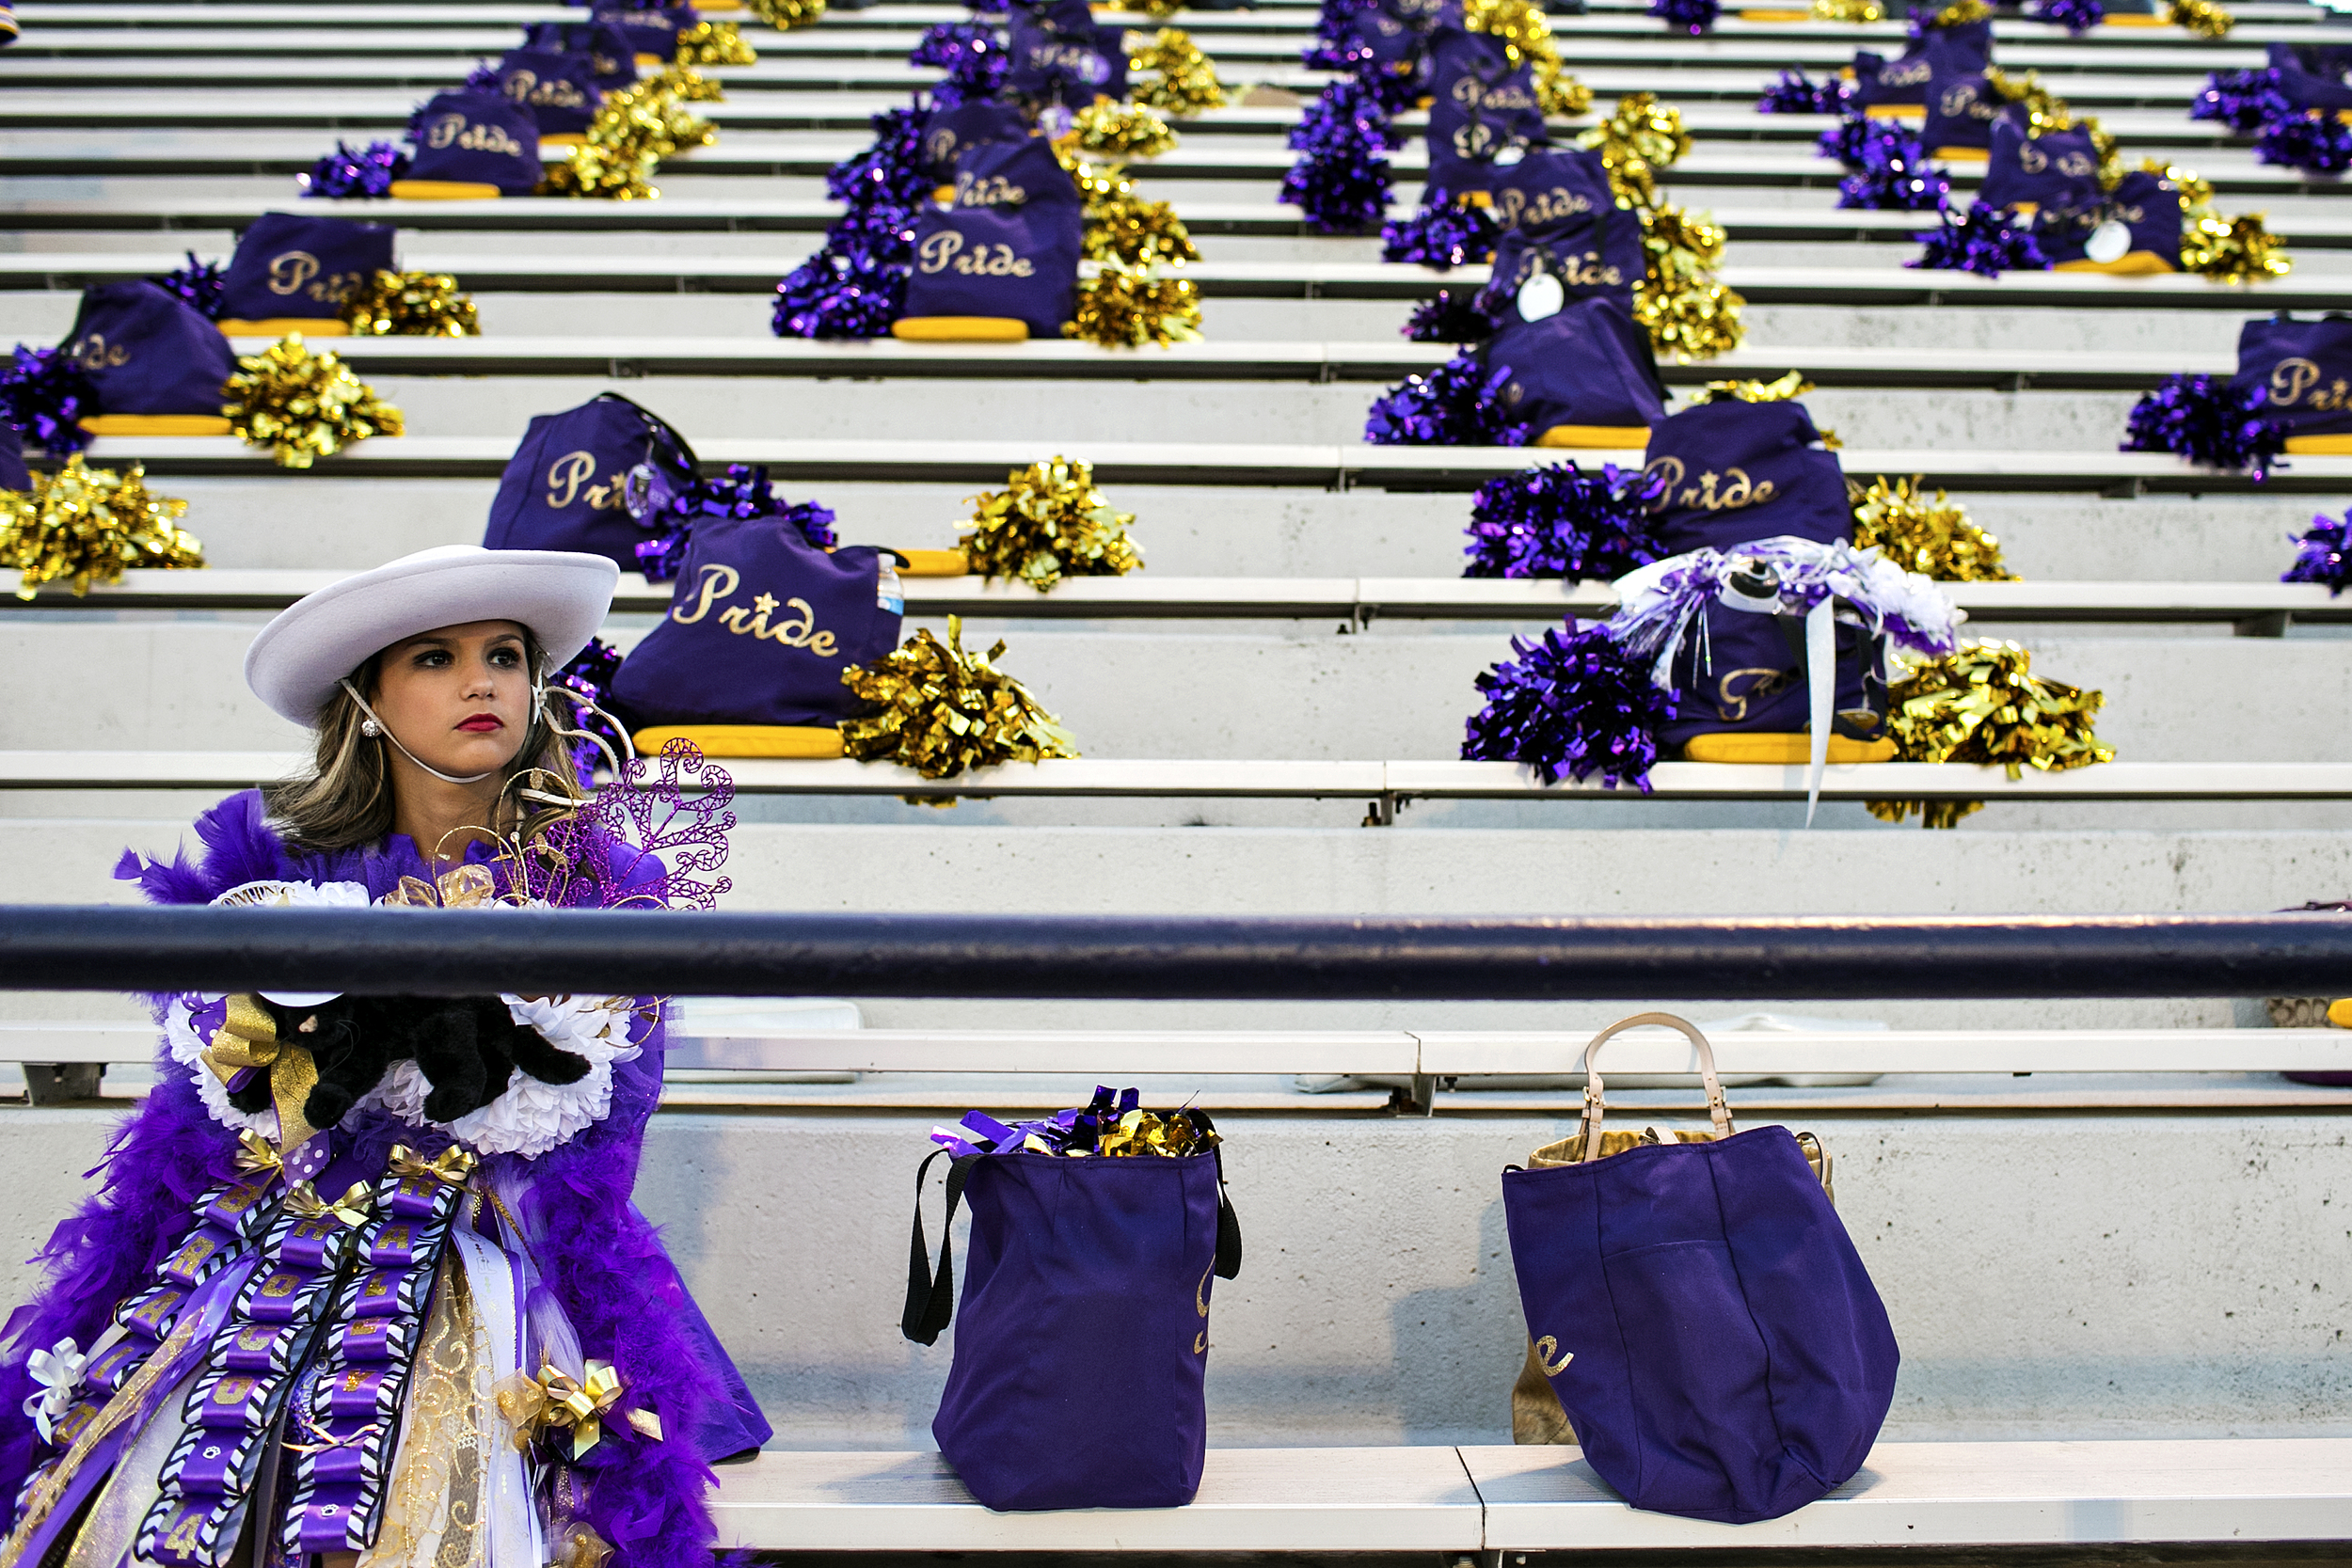 """A member of Lufkin High School's """"Panther Pride"""" drill team sits in the empty stands prior to the Panther's homecoming football game against Whitehouse played on Oct. 3, 2014 at Abe Martin Stadium in Lufkin, Texas. Established in 1905, Lufkin High has a proud football tradition dating back to the 1930s and '40s, when head coach Abe Martin led the Panthers to four district championships and only ten losses in seven years. The town's football success was continued by Dunbar High School, the segregated African-American high school in Lufkin, and its conquest of three state championship titles in the 1960's. After Lufkin High's integration in 1970, the Panthers have continuously produced eventual NFL players, including current Dallas Cowboys star Dez Bryant, and were crowned state champions in 2001."""